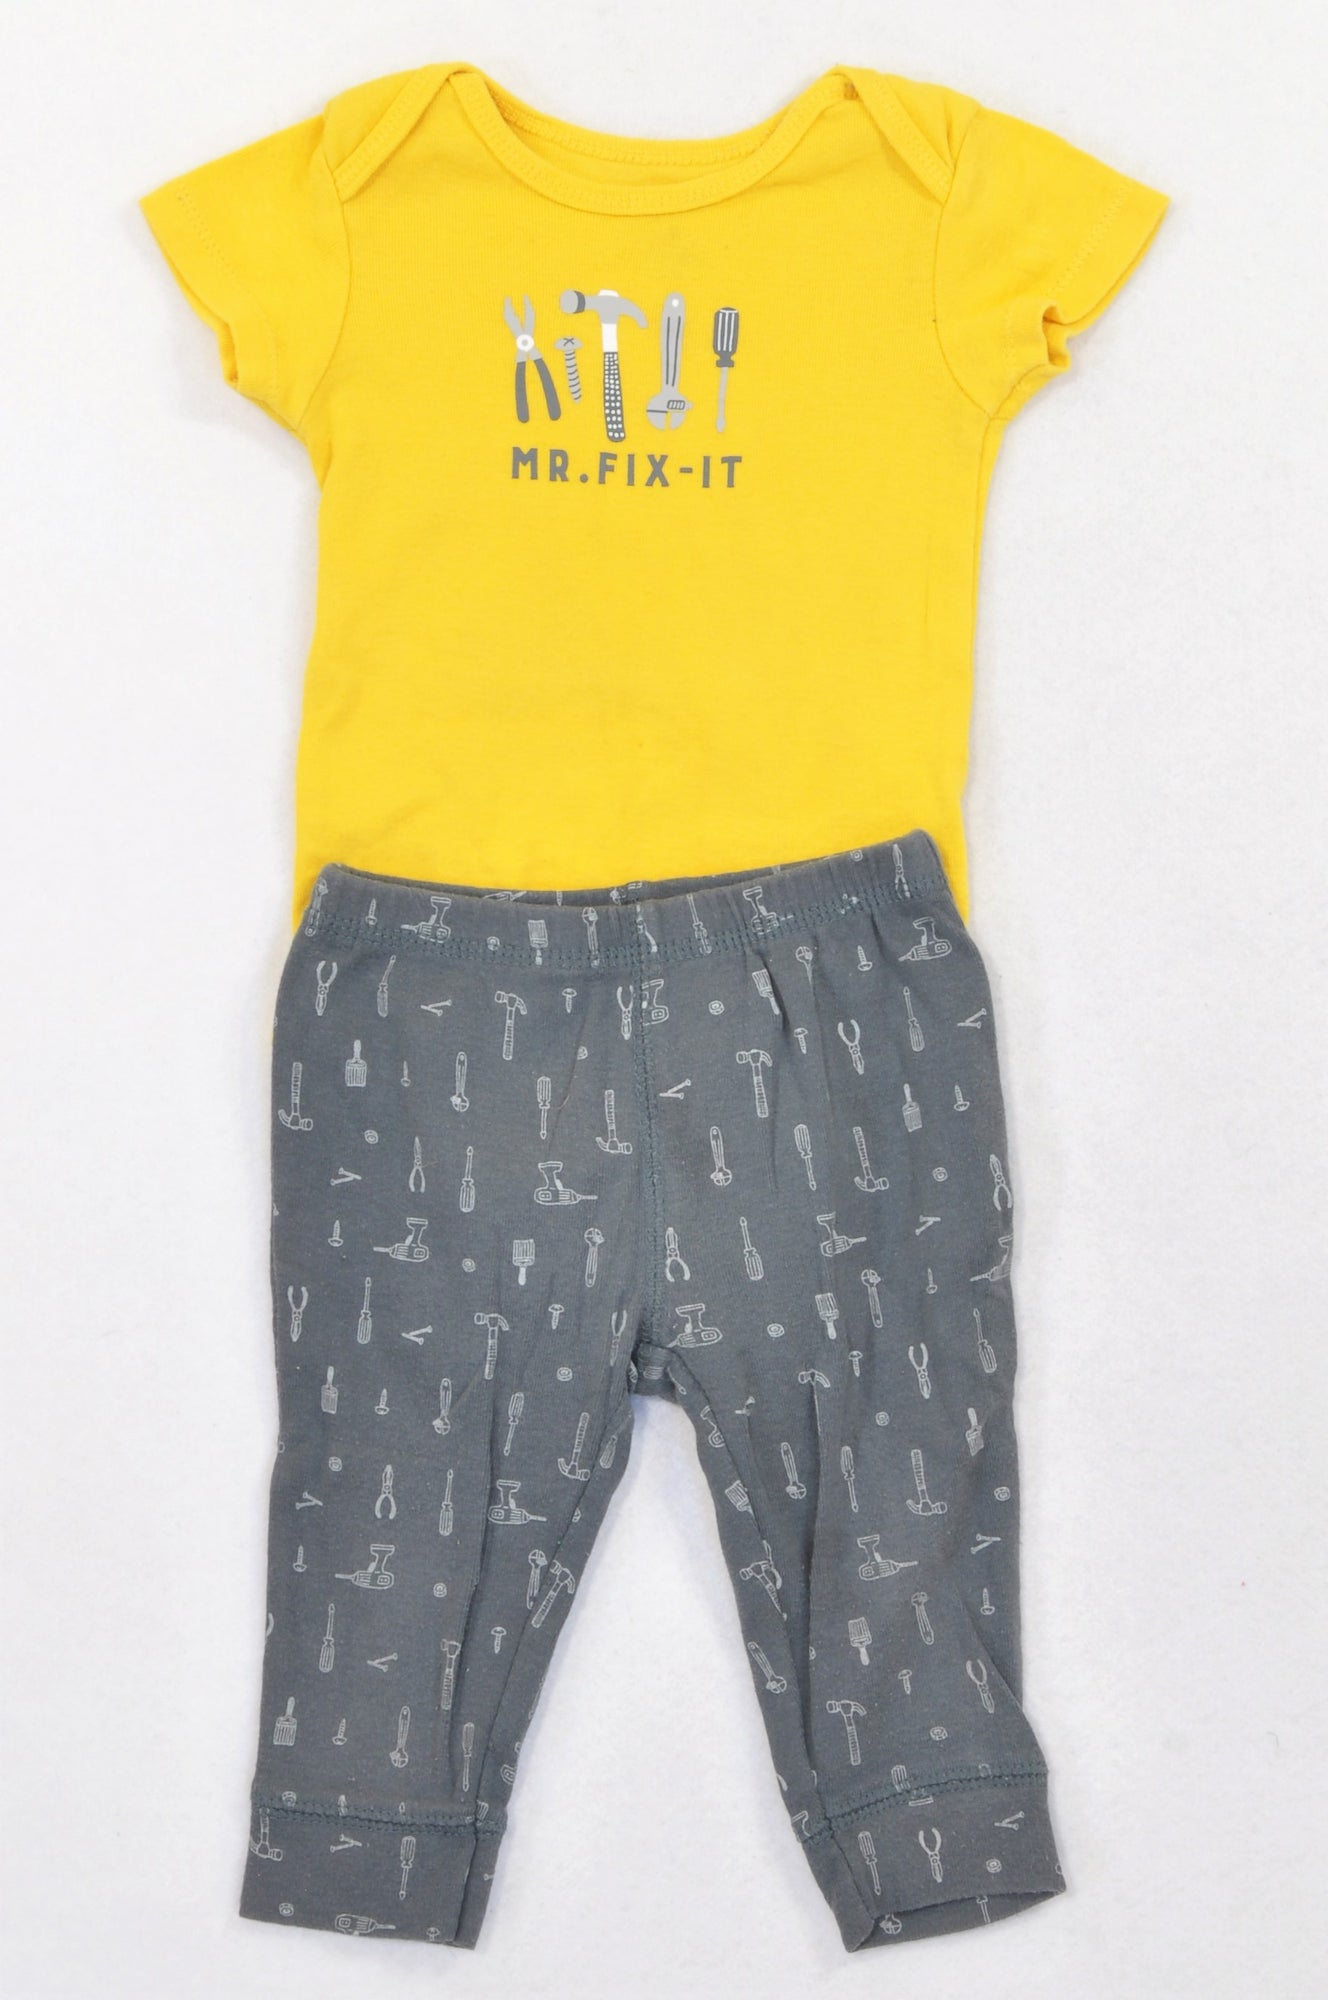 Carter's Yellow & Charcoal Mr Fix It Outfit Boys 3-6 months